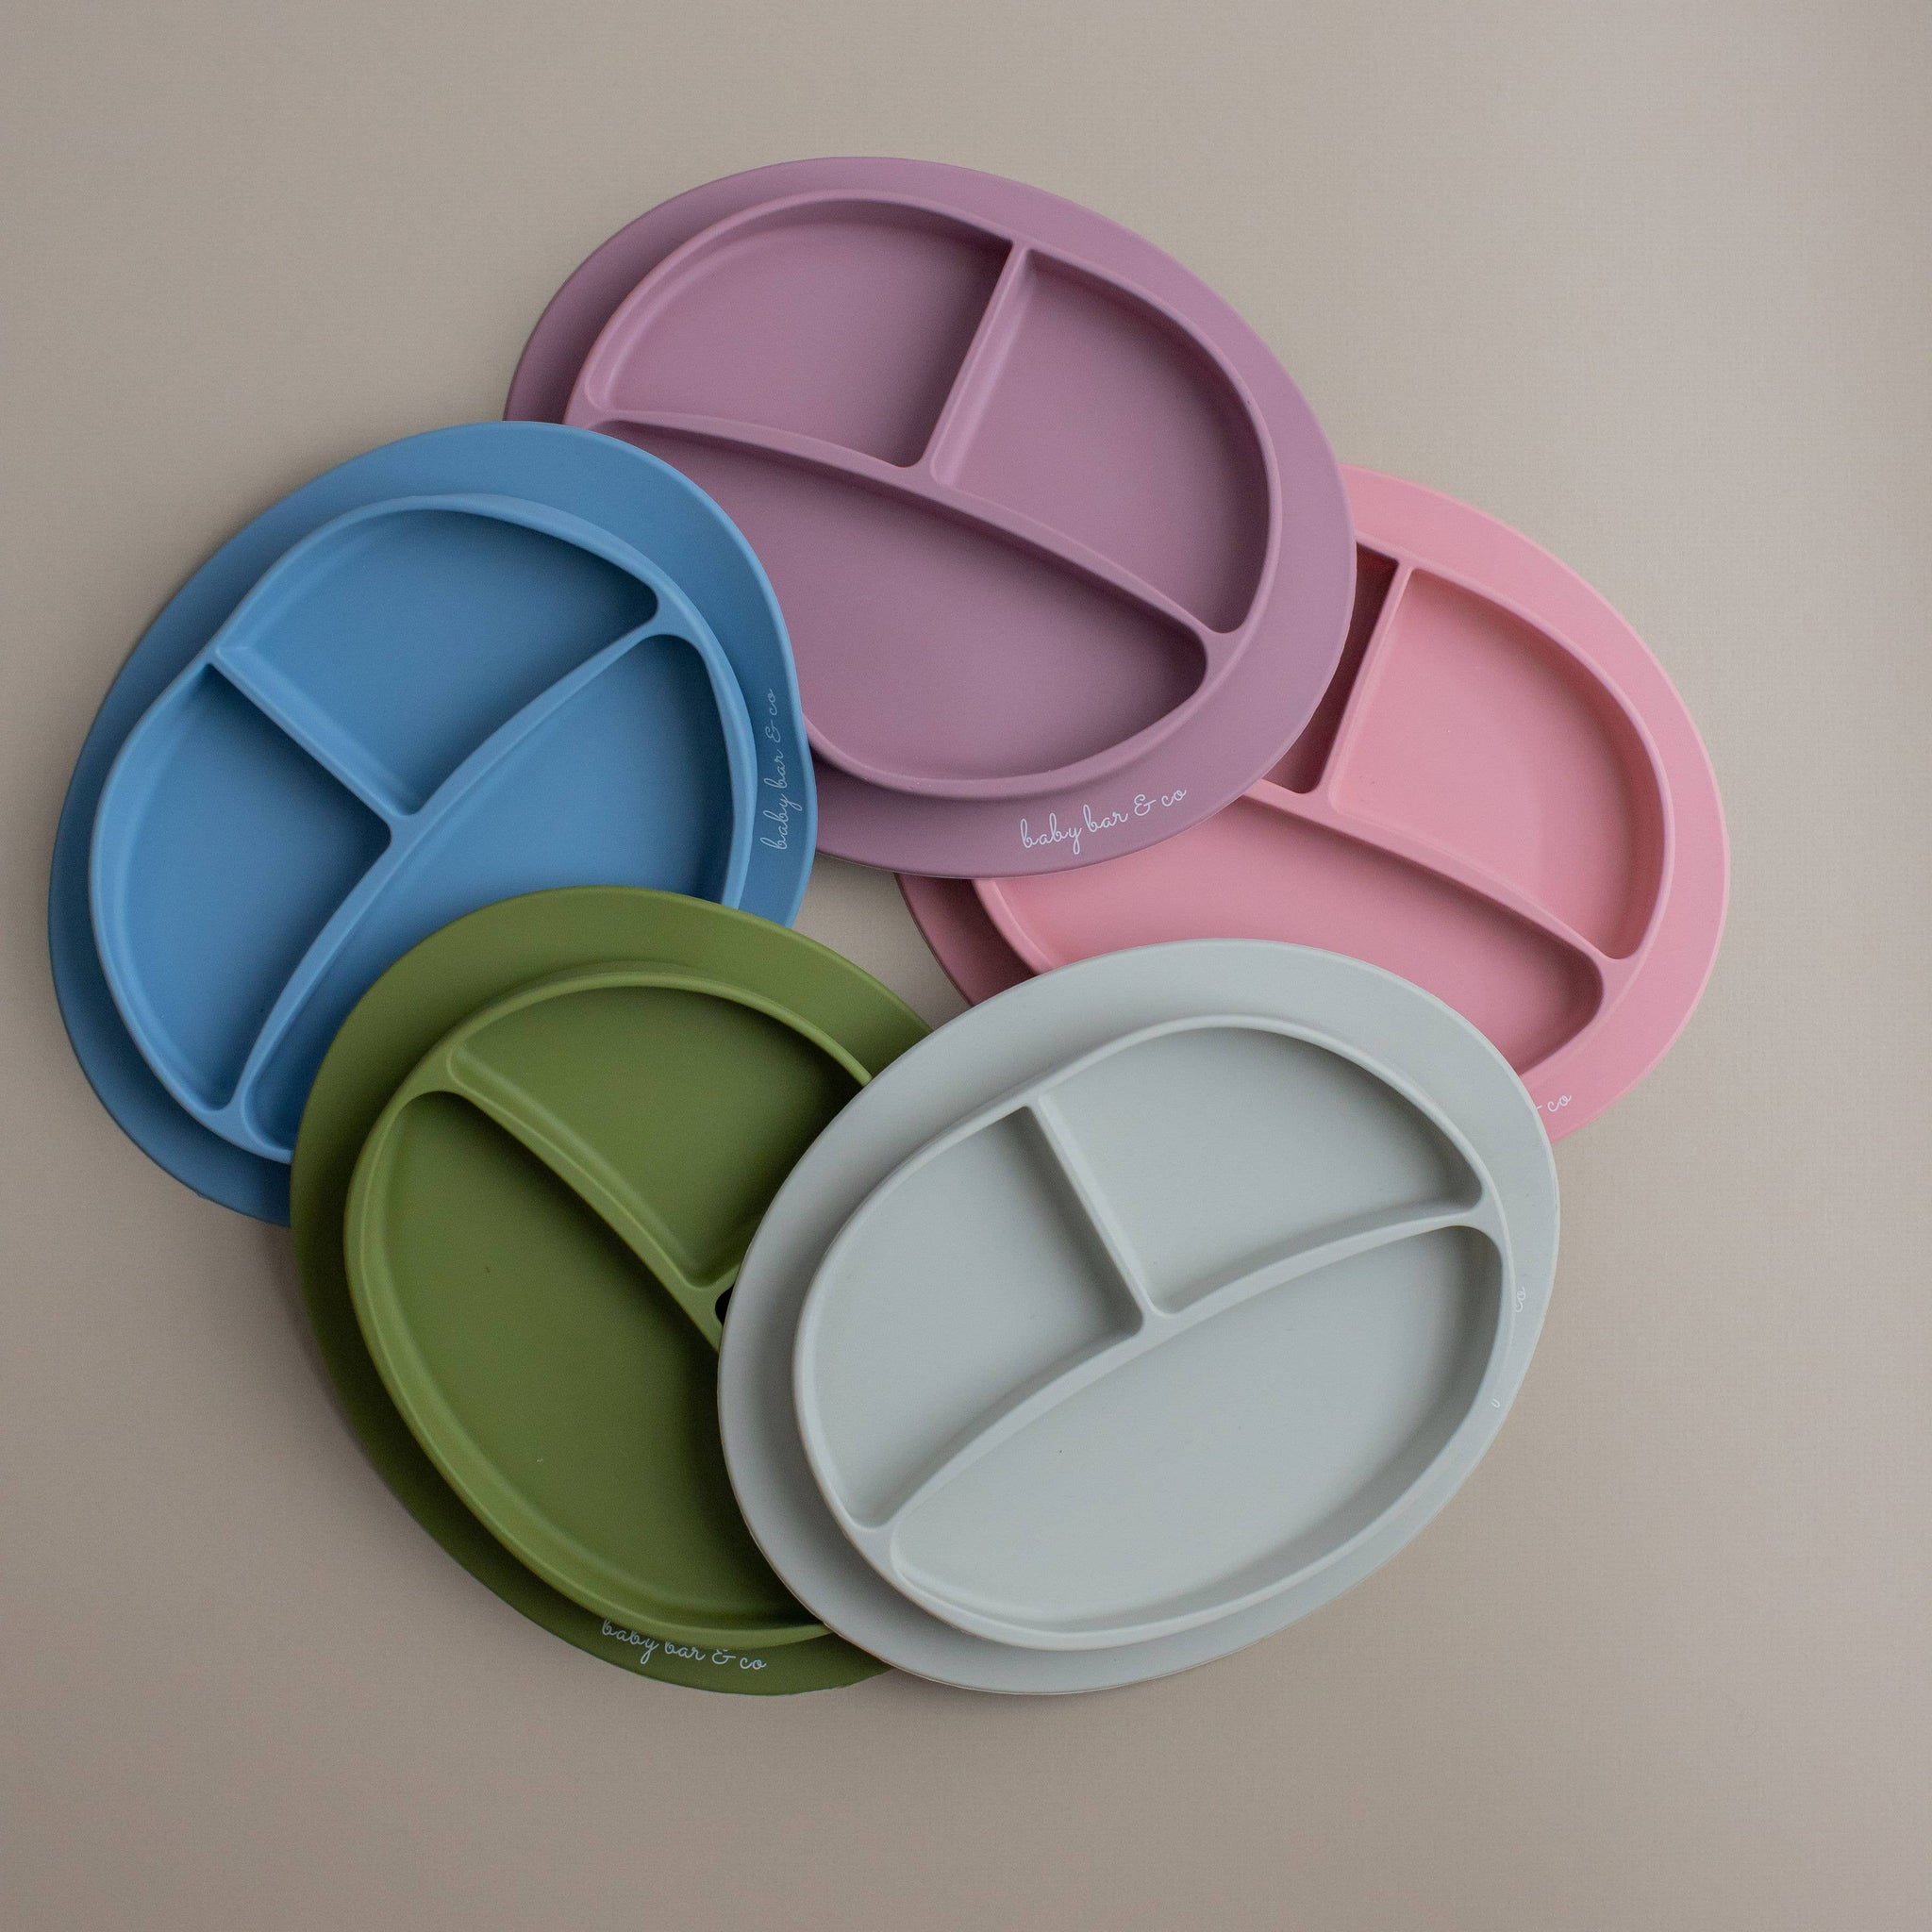 Baby Bar & Co Silicone Plates - SUCTION